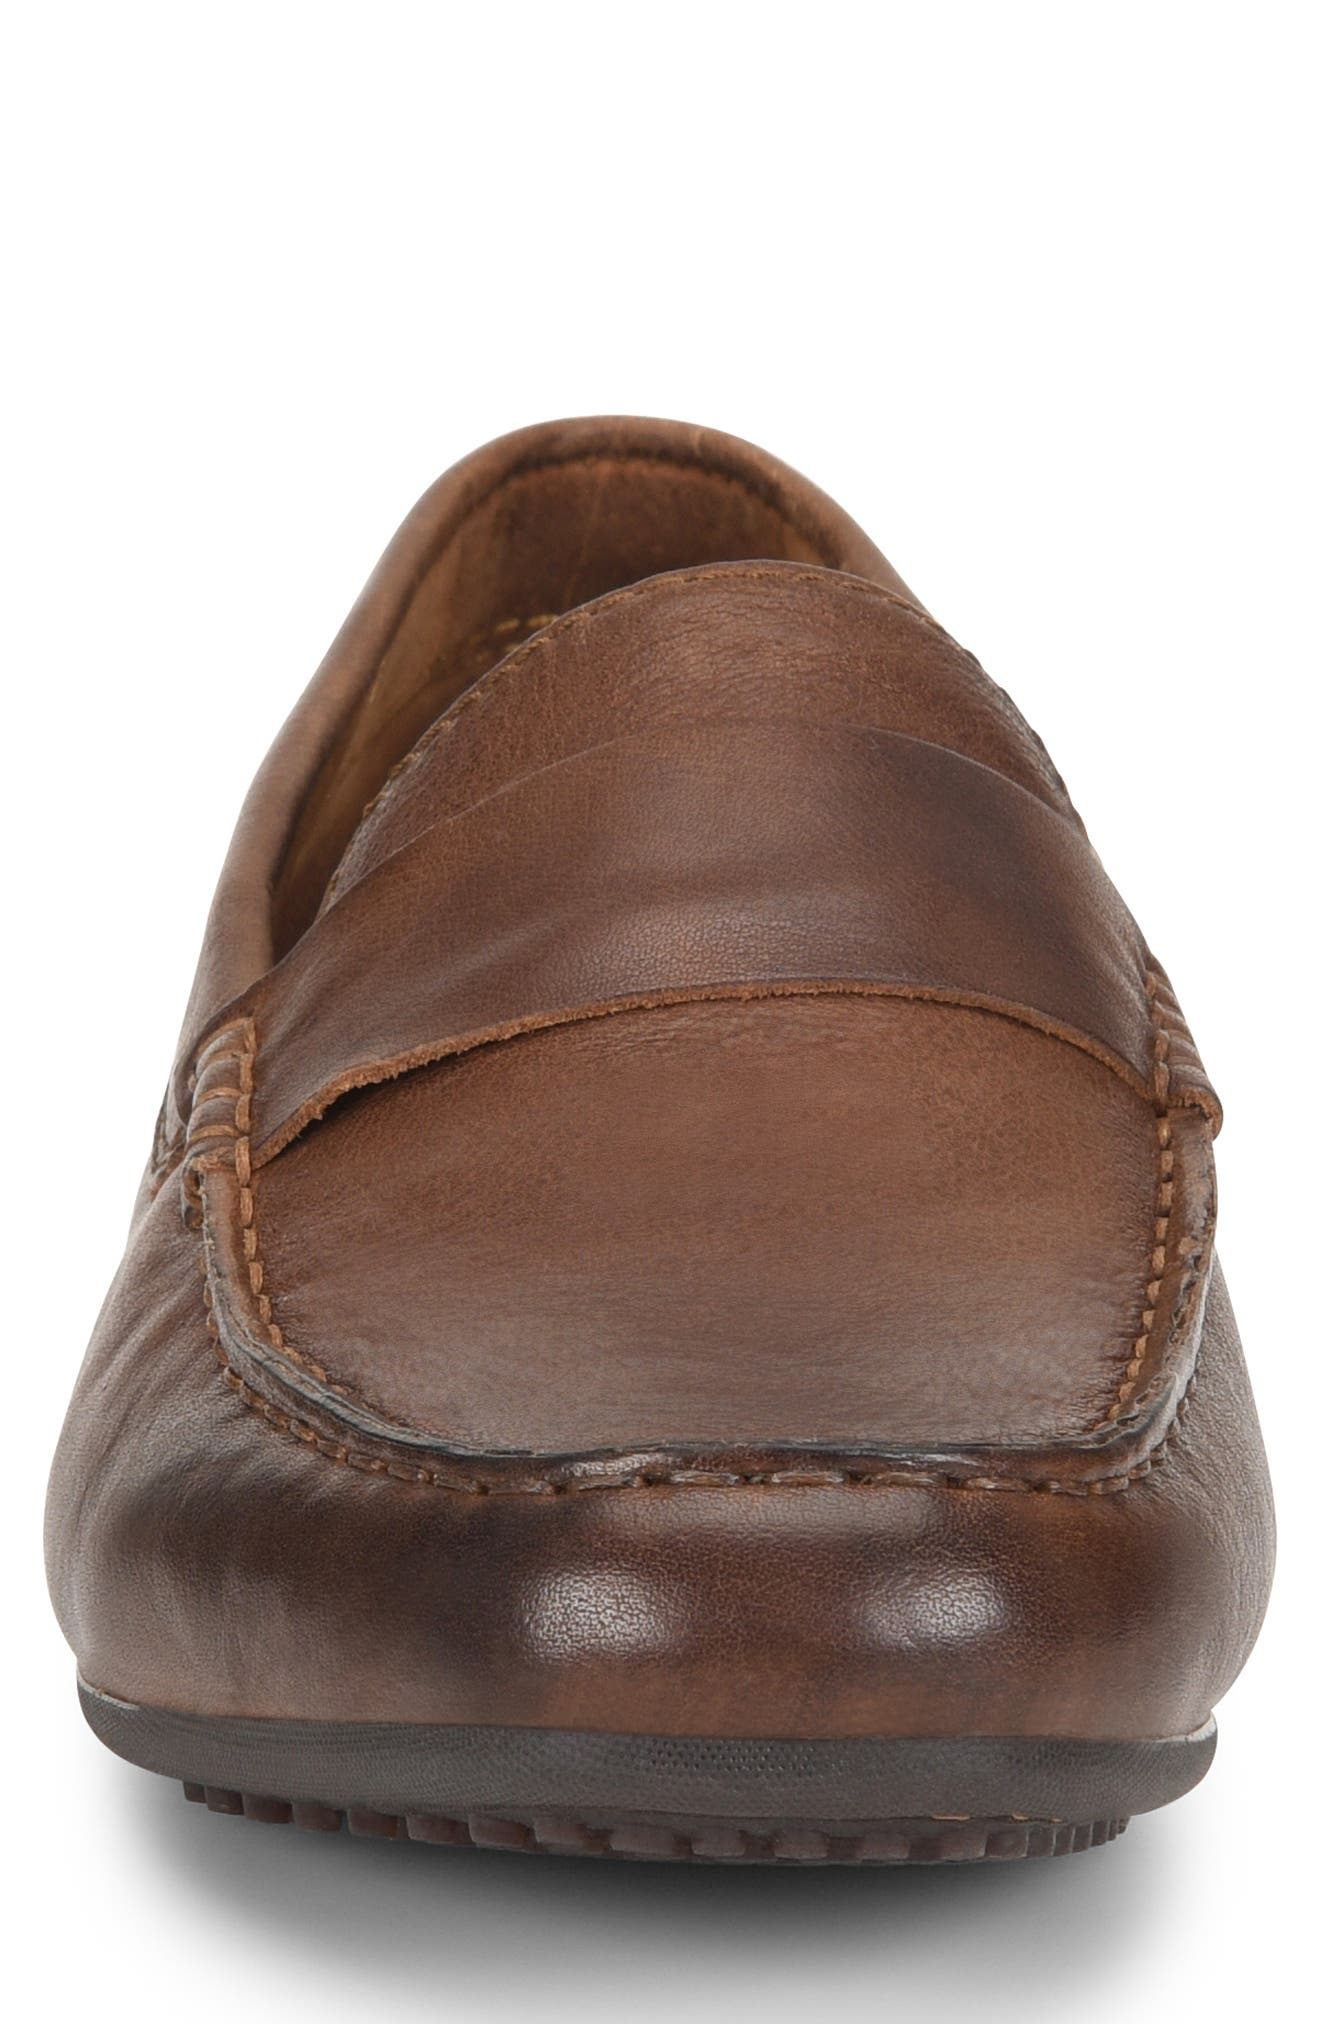 Ratner Driving Loafer,                             Alternate thumbnail 4, color,                             BROWN LEATHER